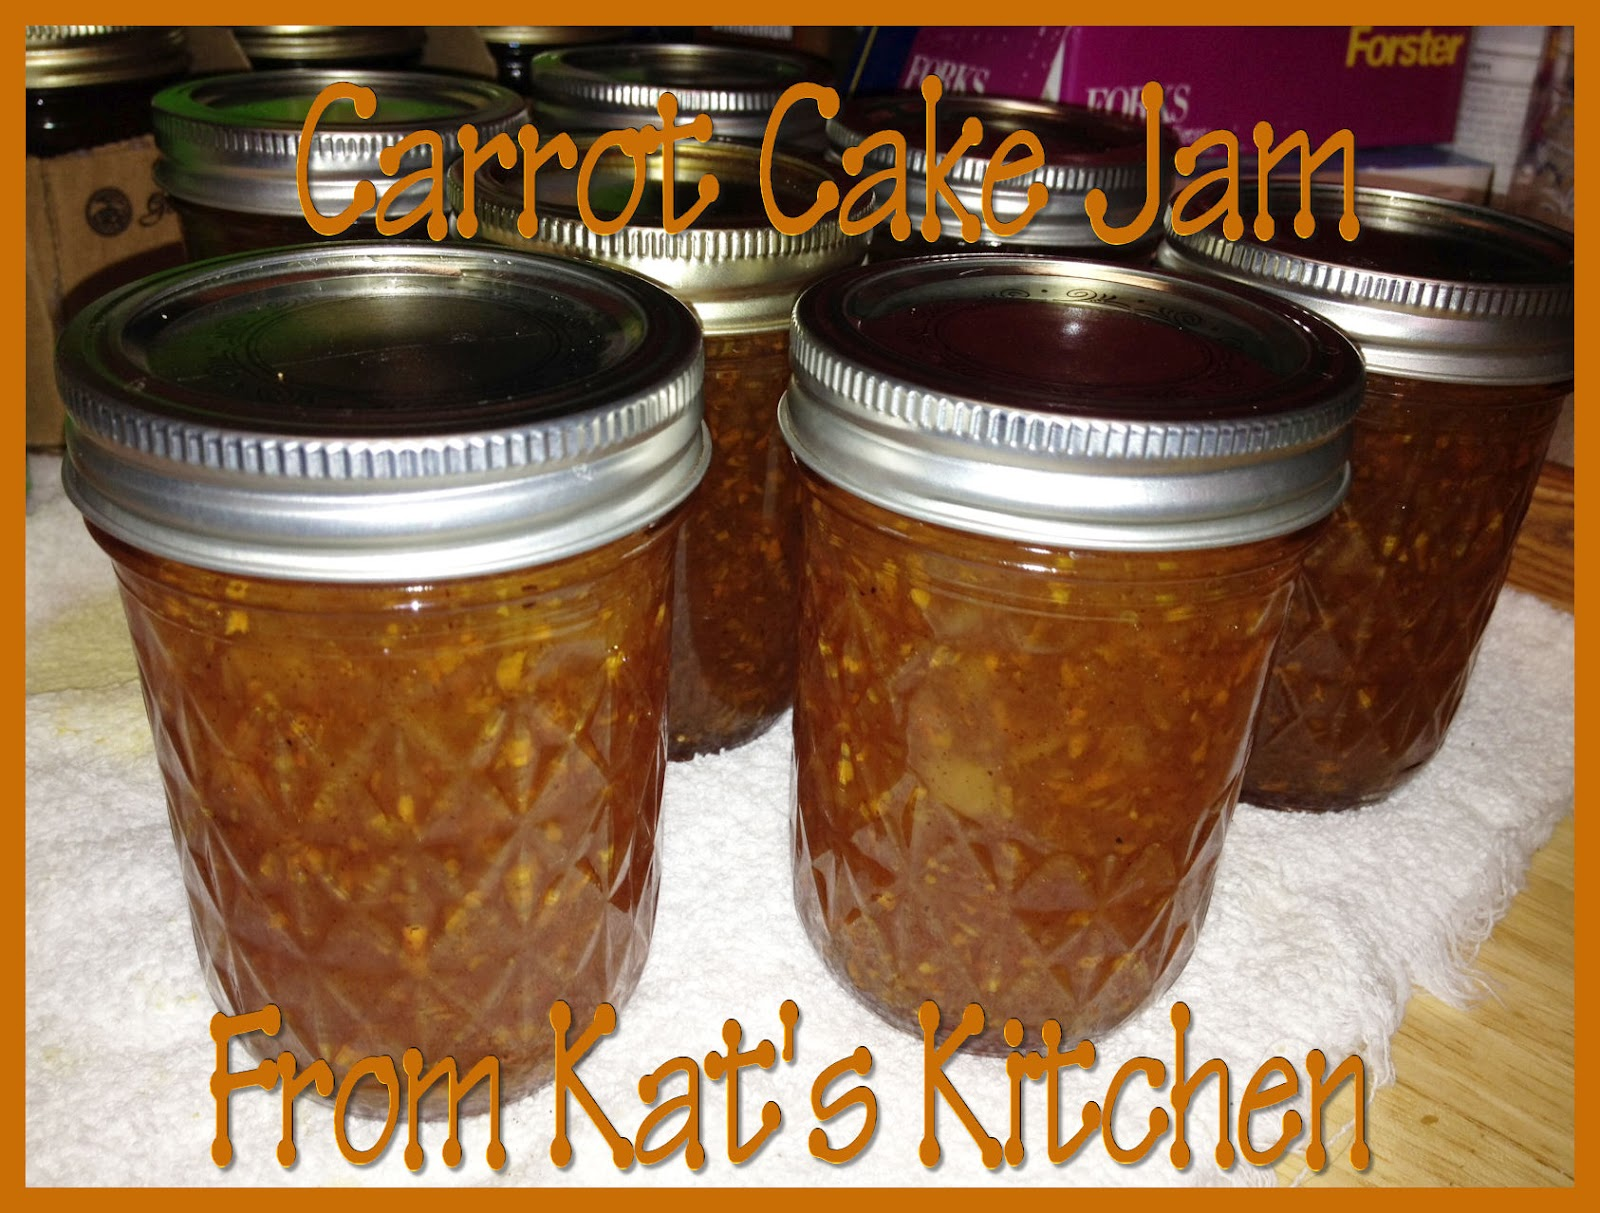 ... to Kat's Canning Tidbits I hope you enjoy your visit!: Carrot Cake Jam